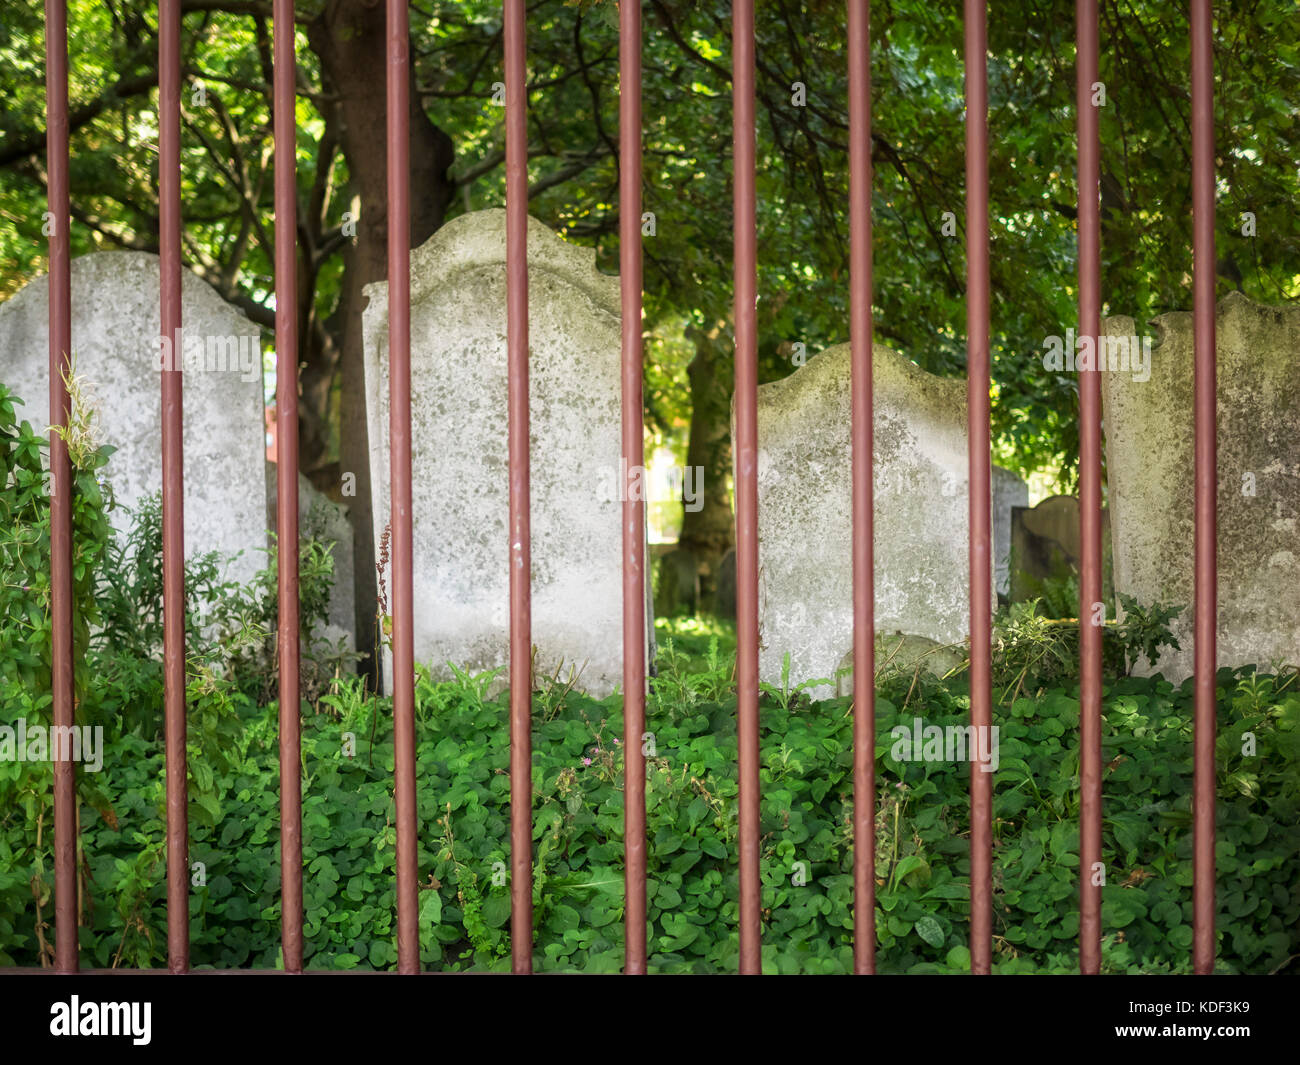 BUNHILL FIELDS BURIAL GROUND, LONDON, UK:  Gravestones seen through therailing fence which forms the boundary of - Stock Image